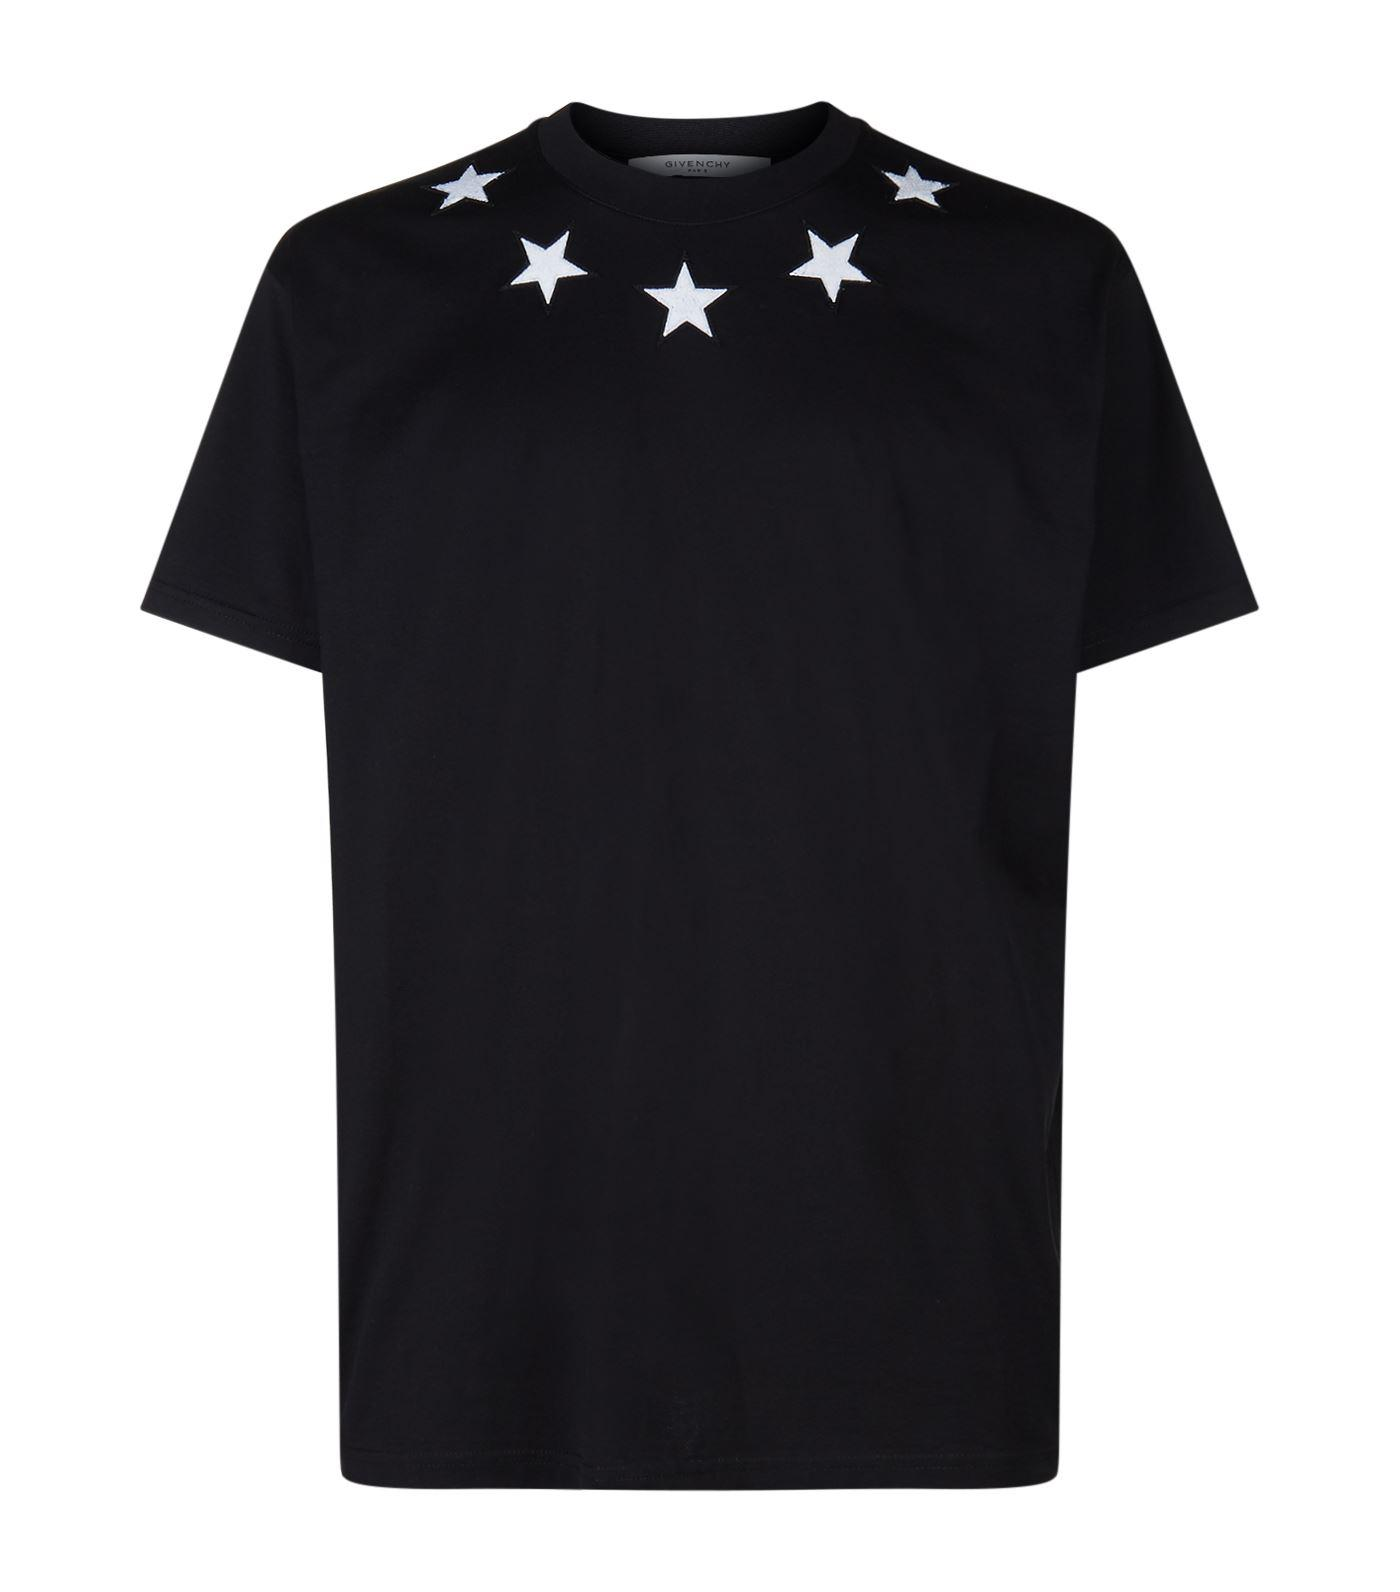 Givenchy star trim t shirt in black for men lyst for Givenchy t shirts for sale